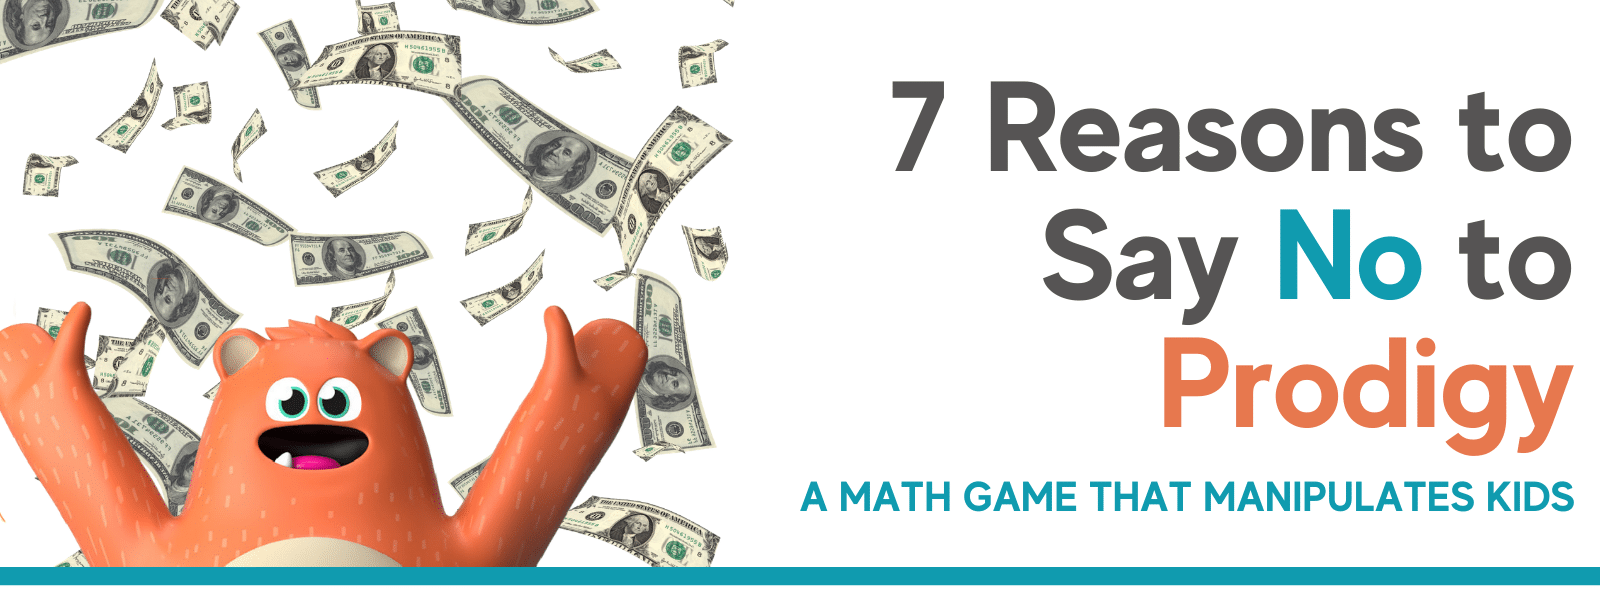 7 reasons to say no to Prodigy, a math game that manipulates kids header